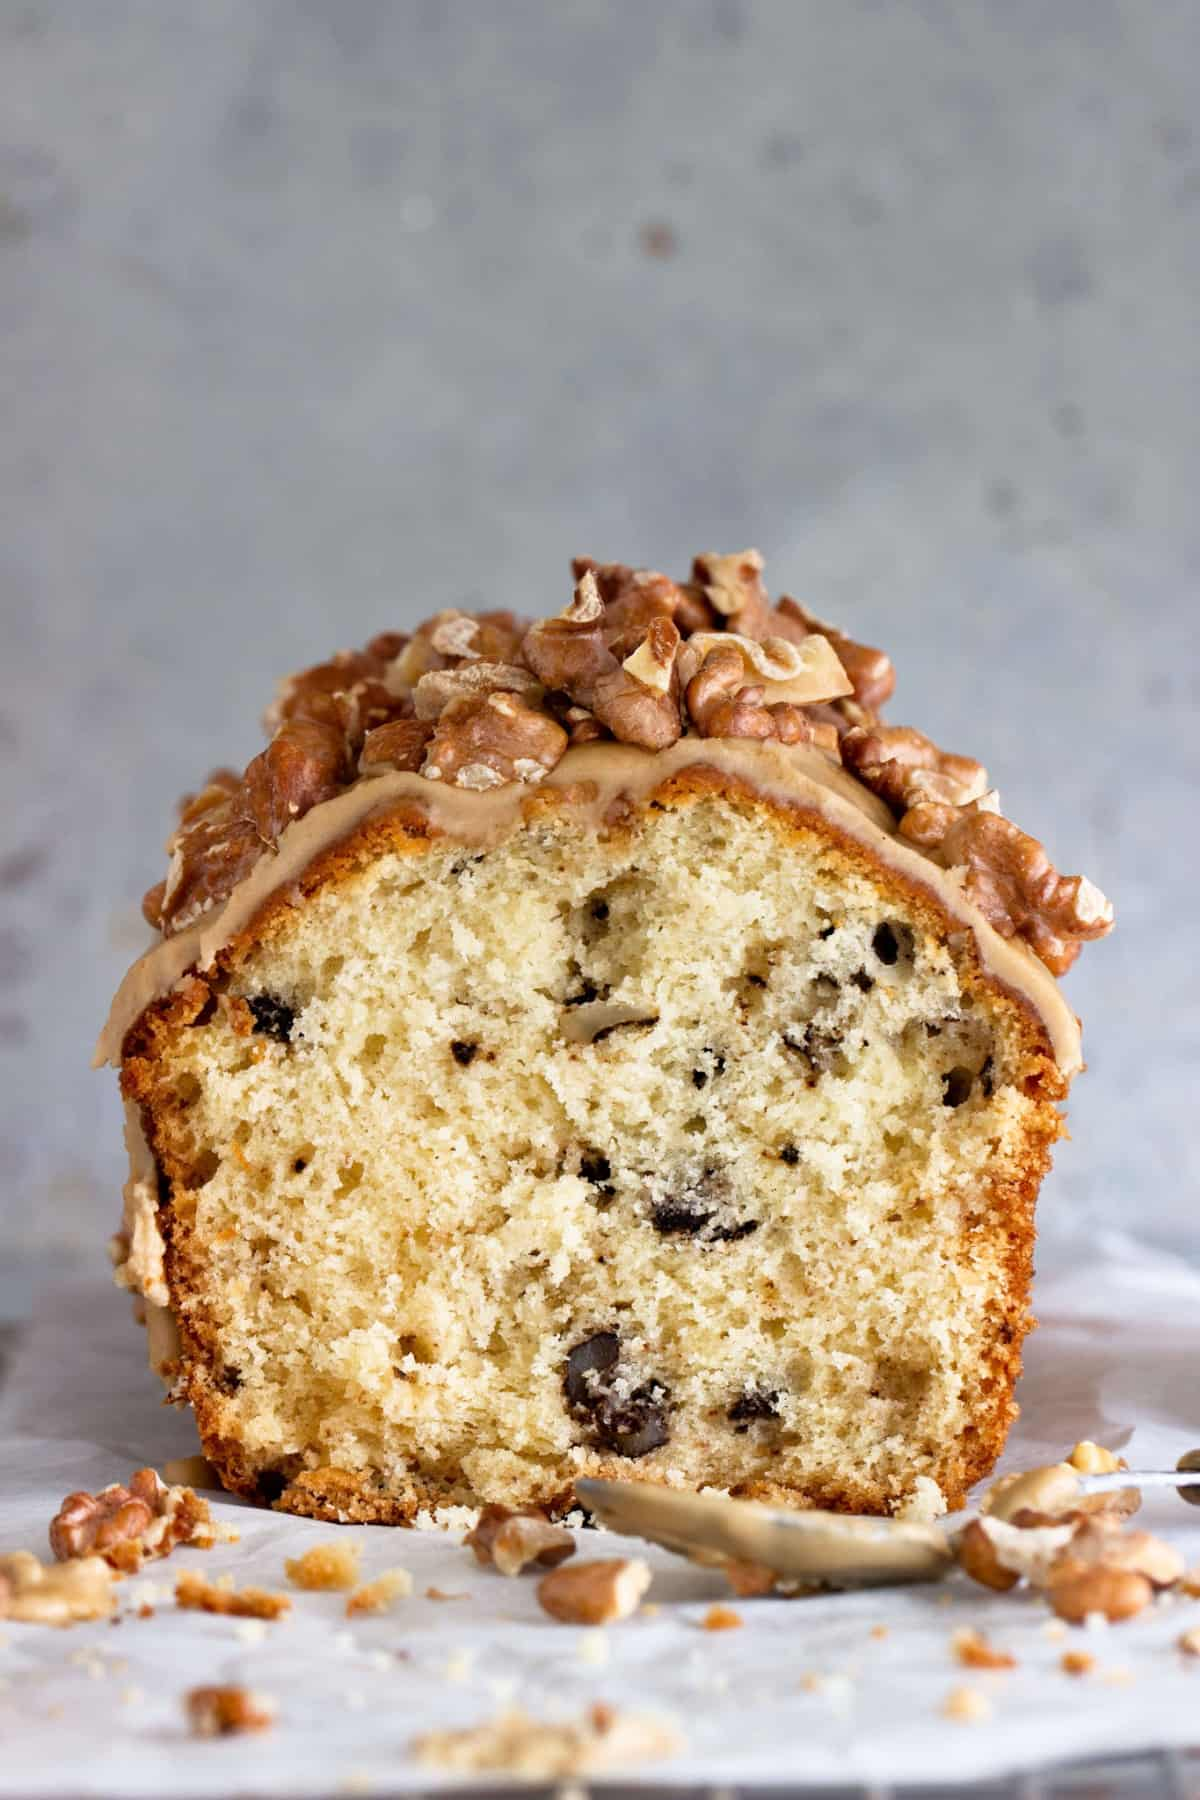 Half loaf cake with walnuts on top, grey background, loose walnut pieces